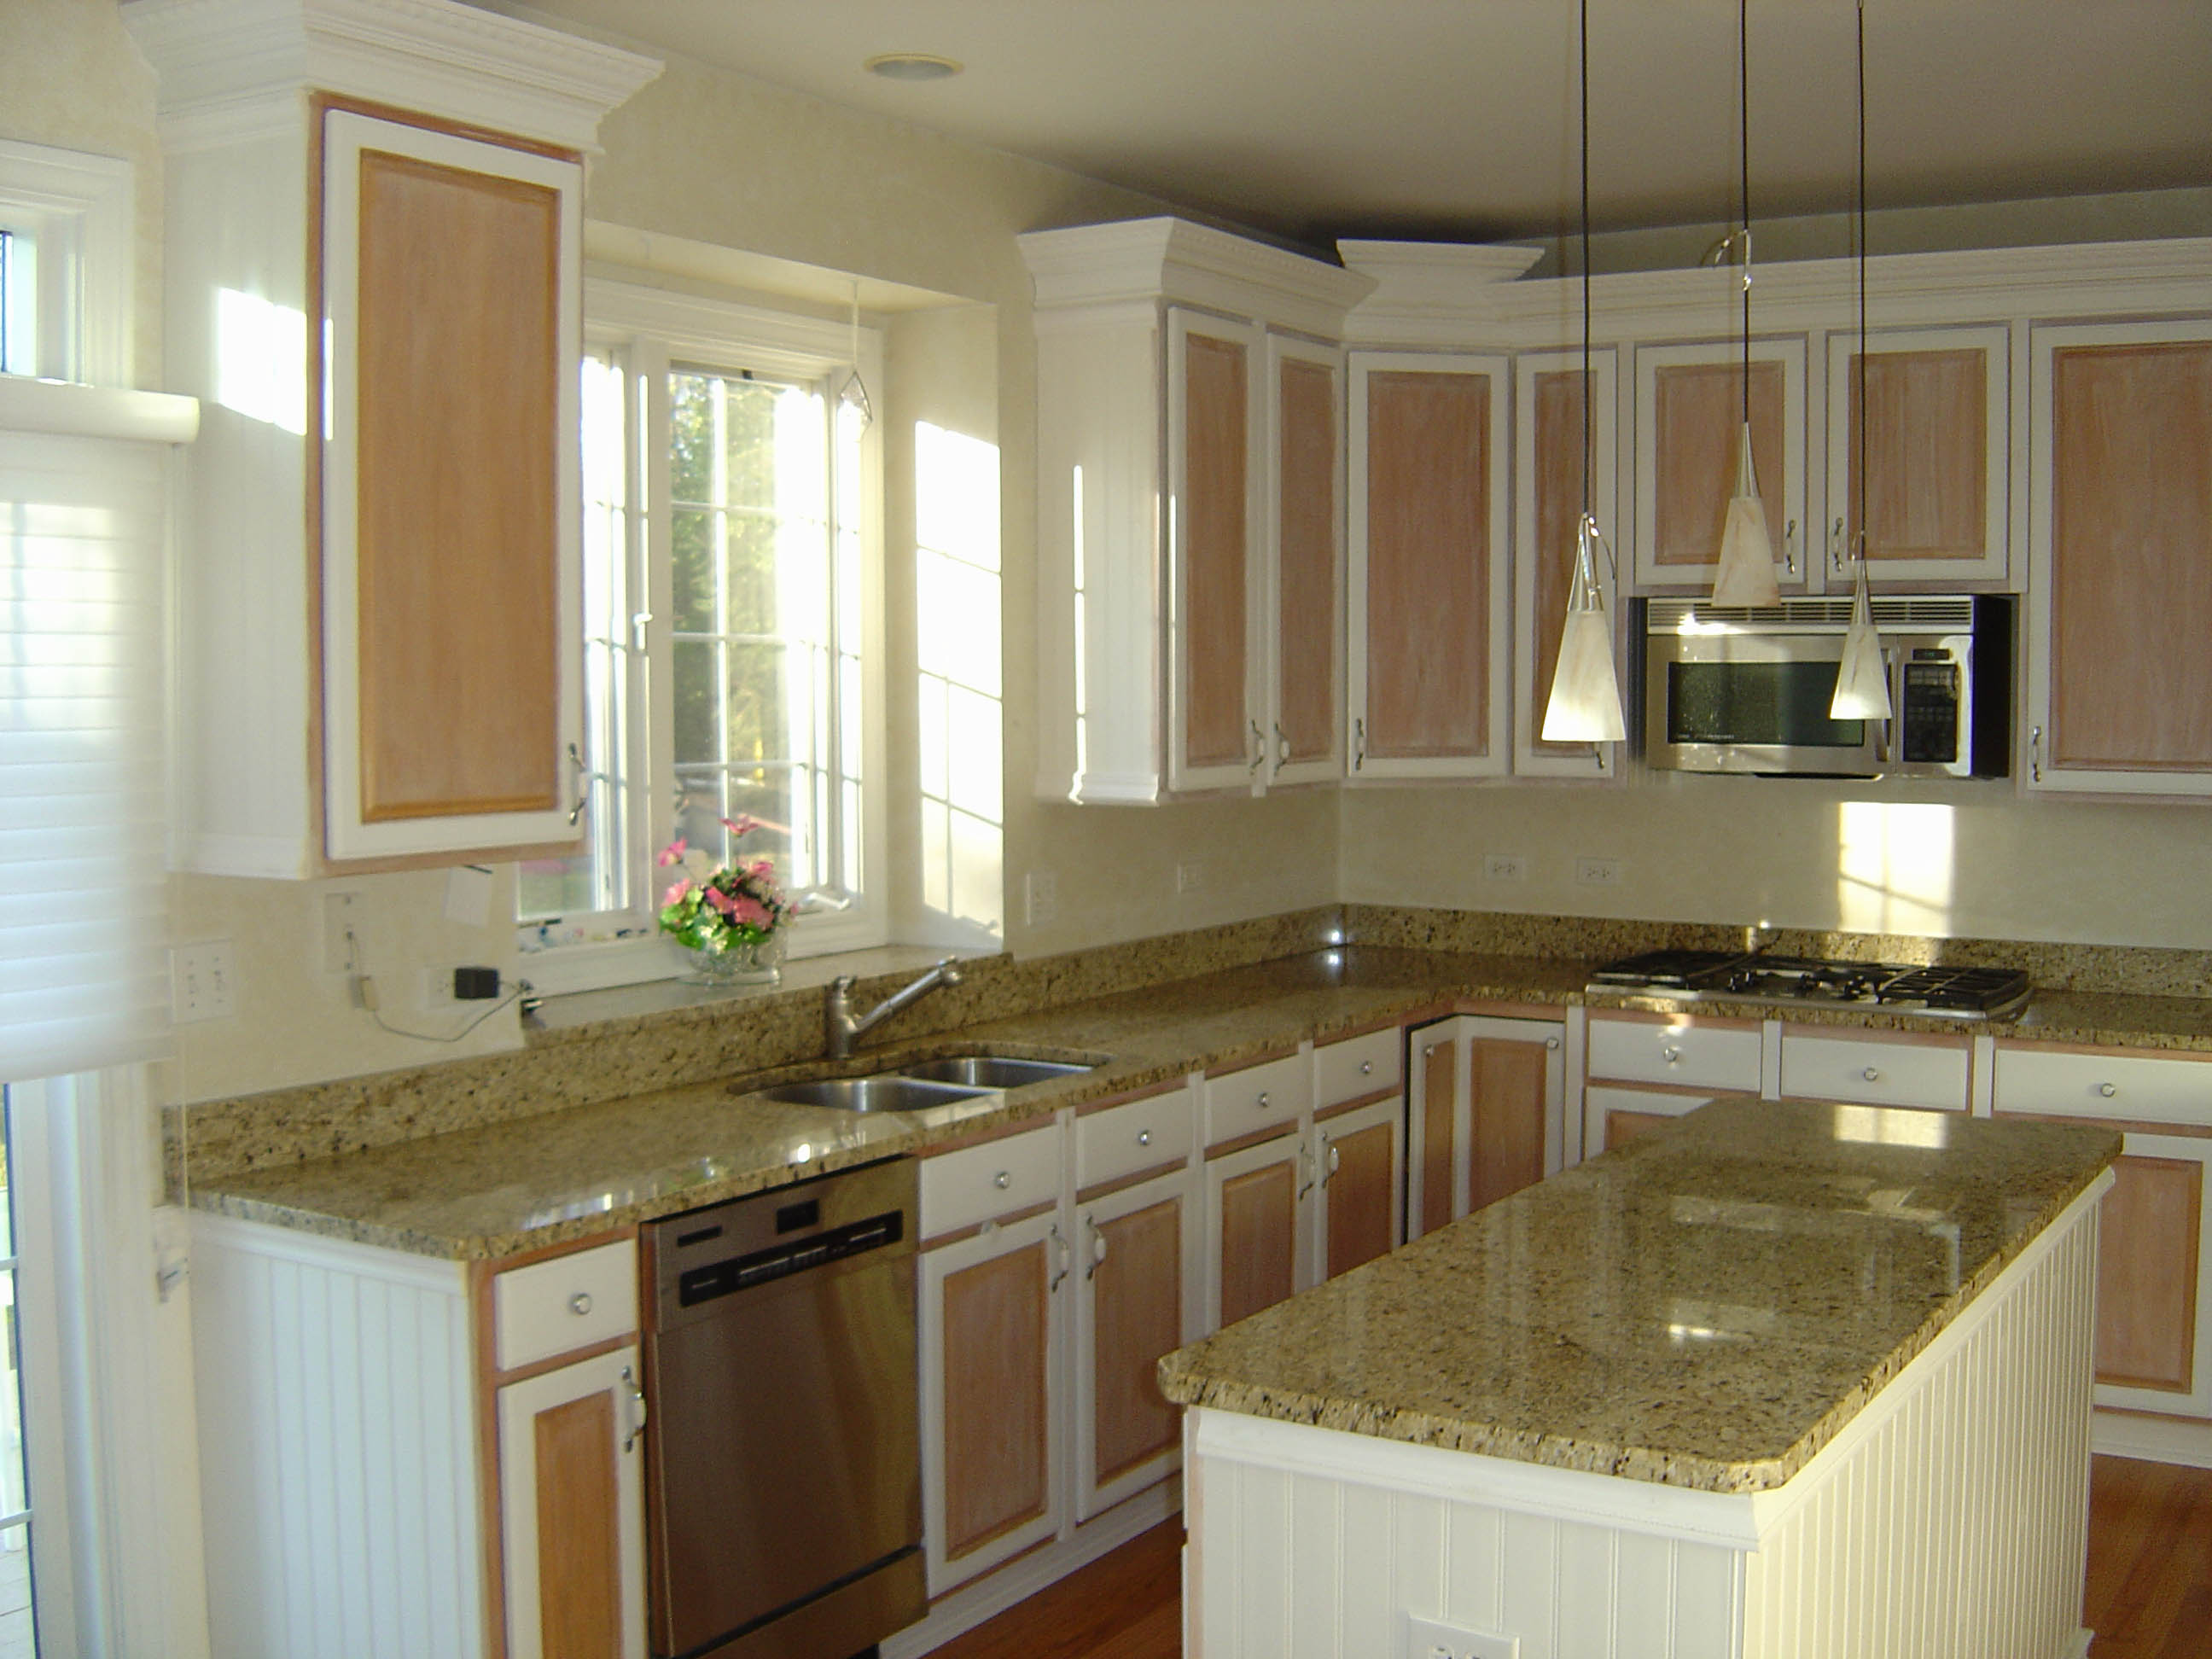 Kitchen cabinet refacing boston - I 1